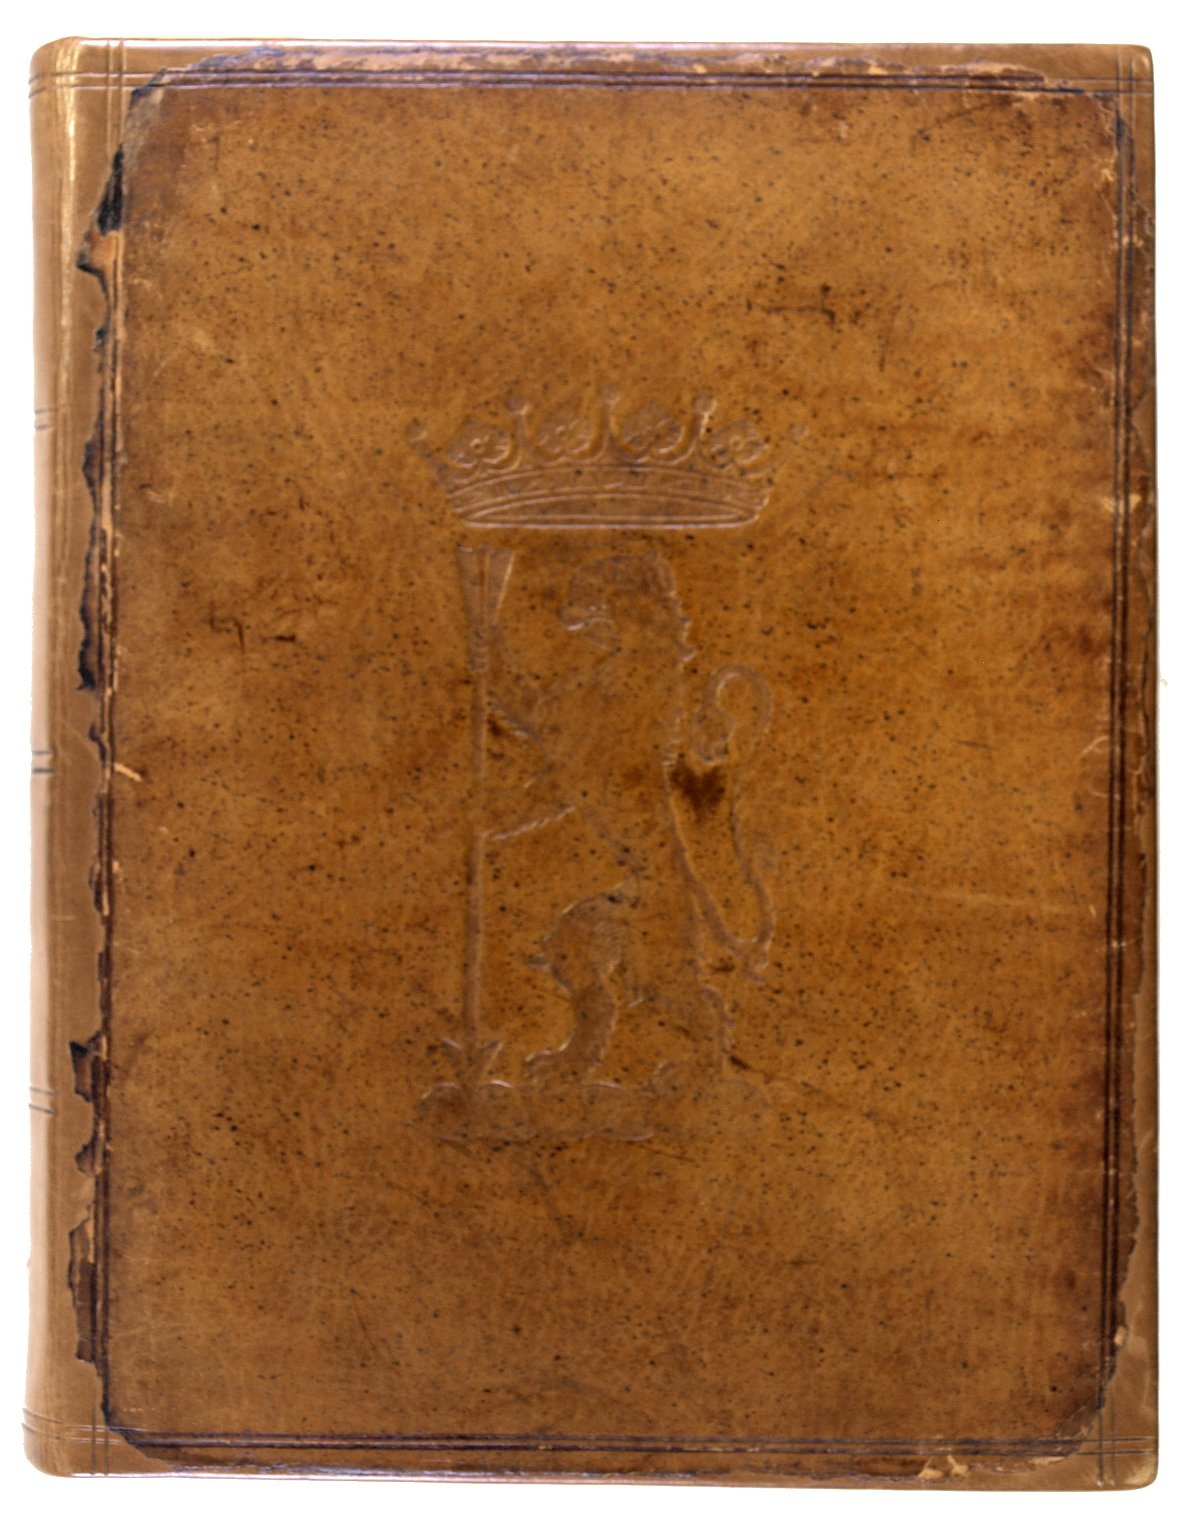 Front cover, R1222 copy 2.